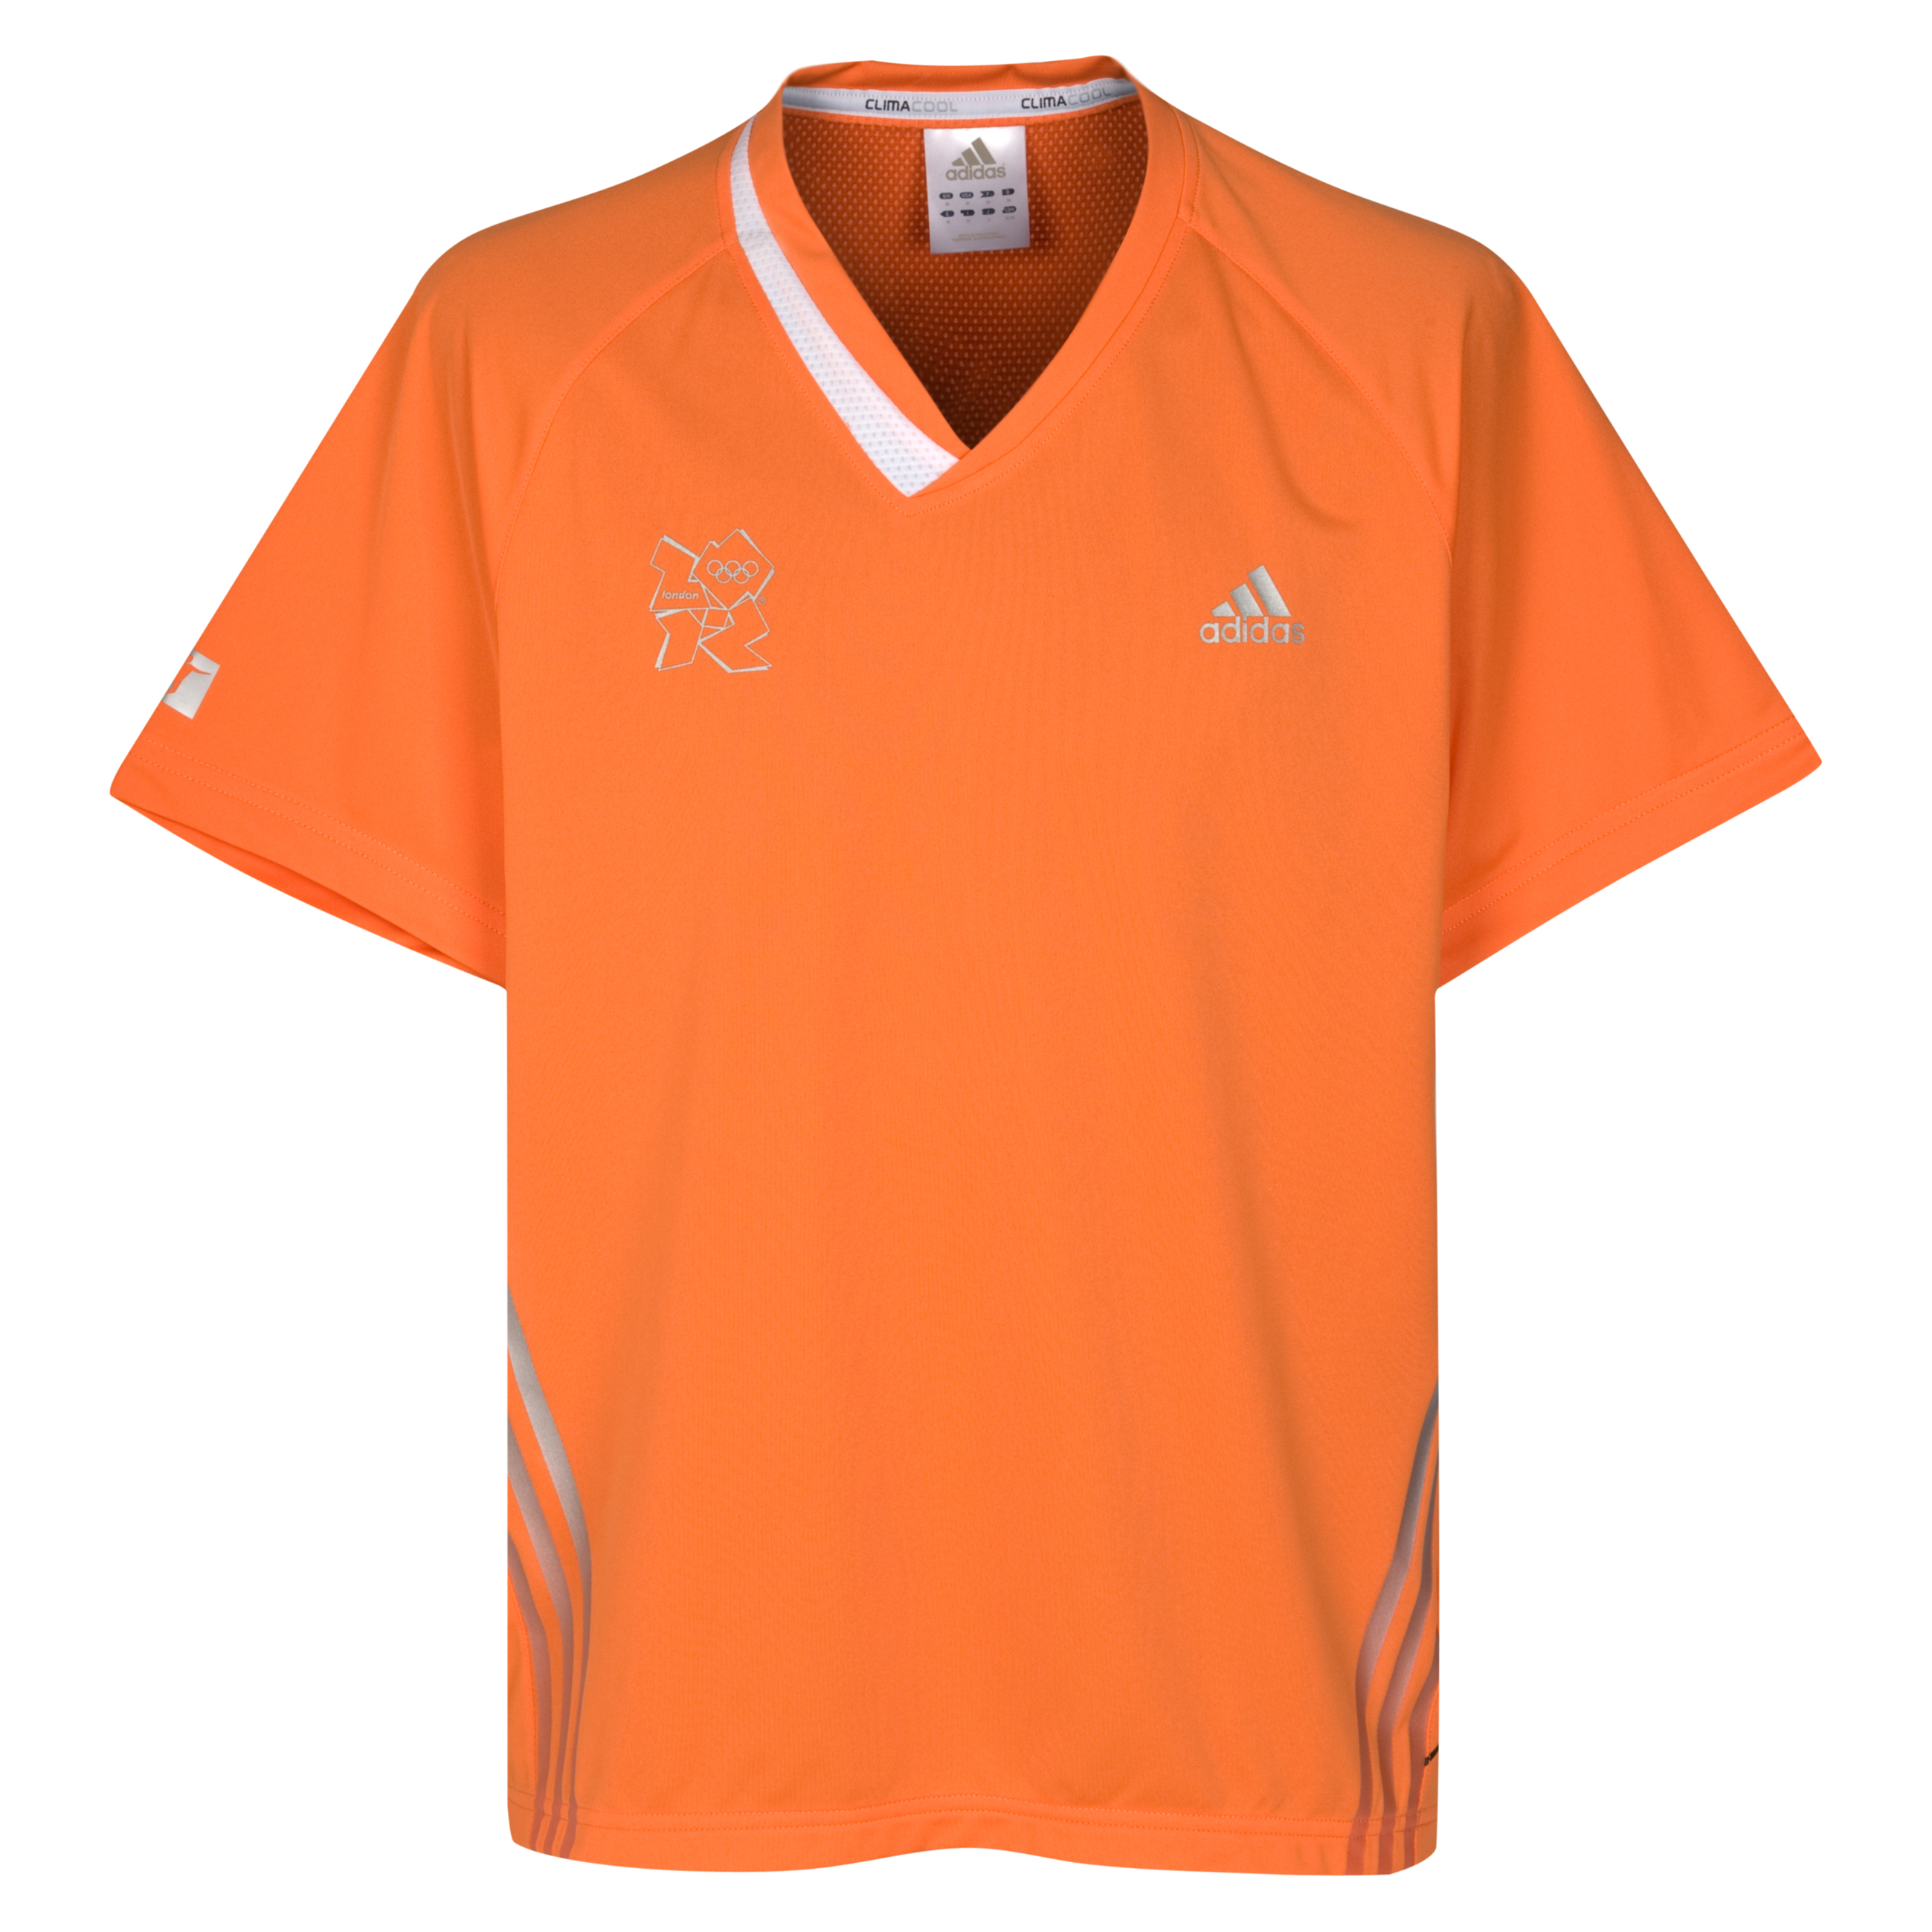 adidas London 2012 Football Jersey Locog Burnt Orange/White